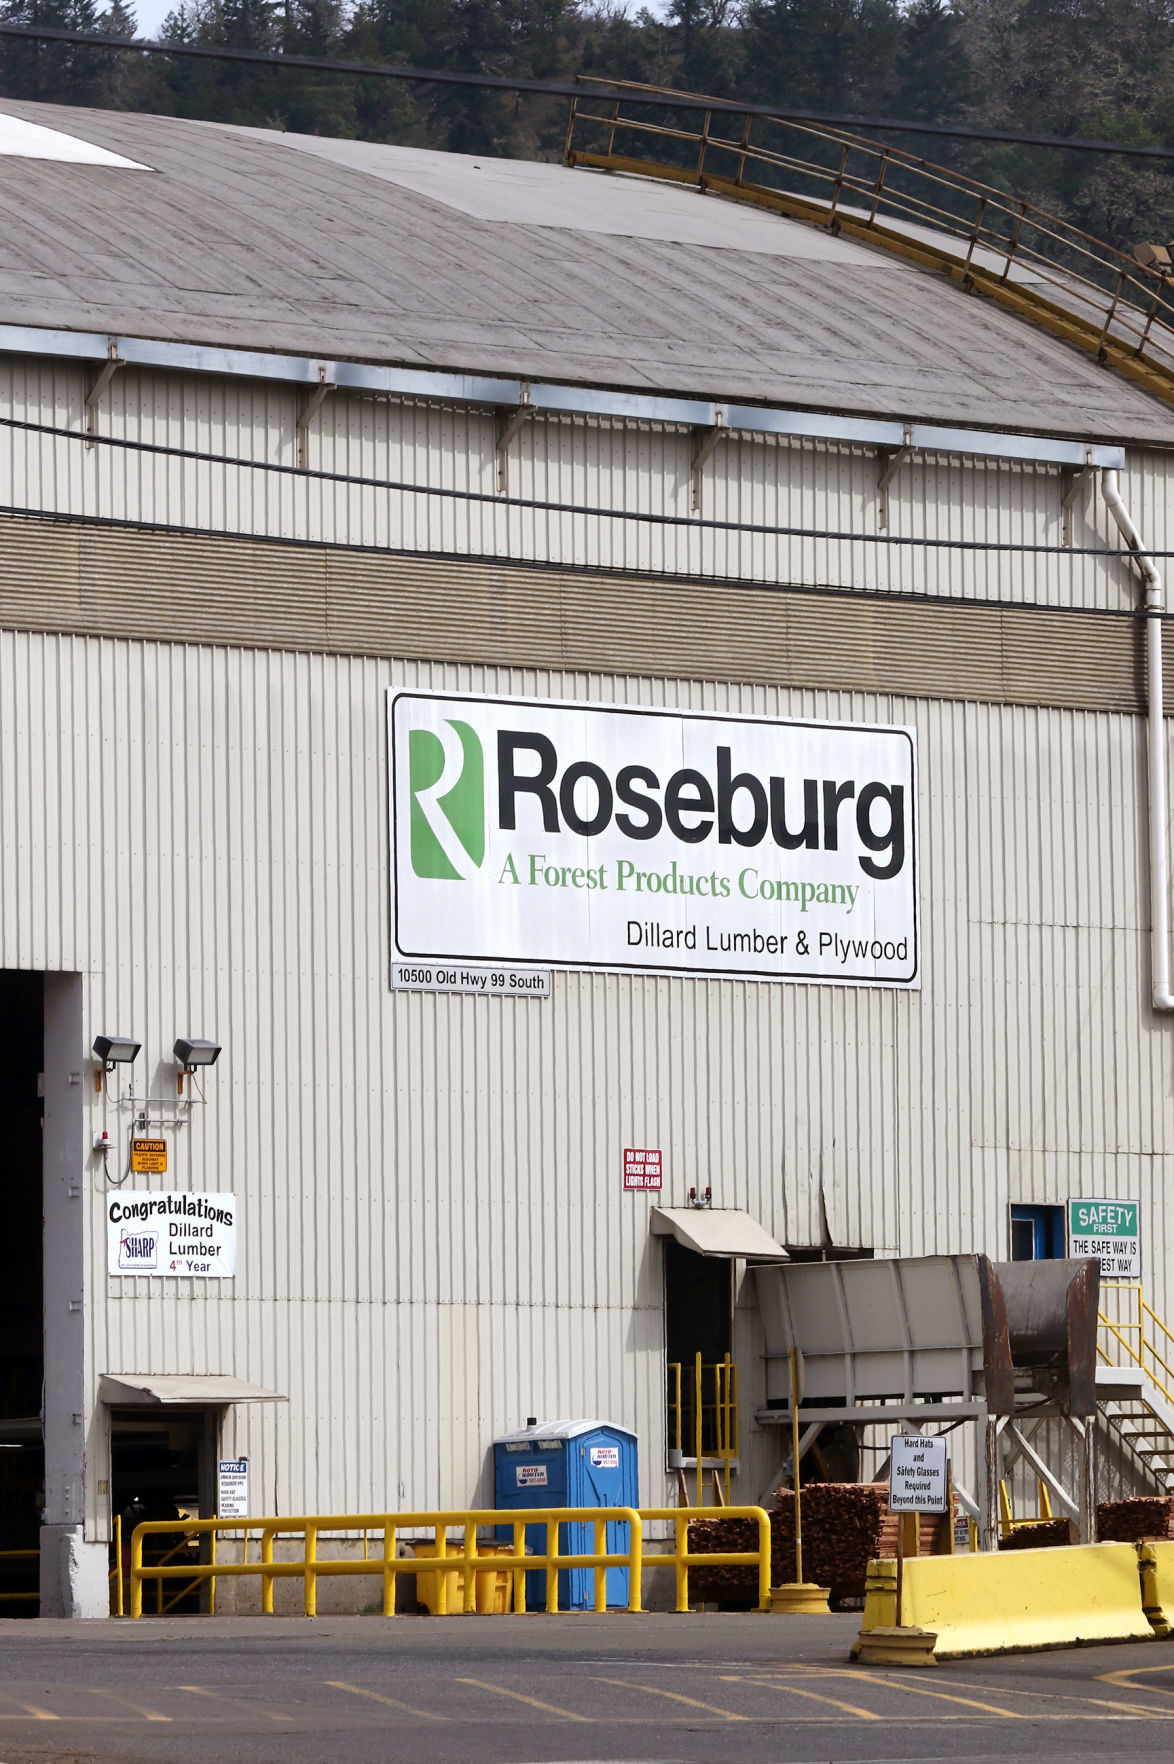 Roseburg Forest Products denies blame in illegal timber practices